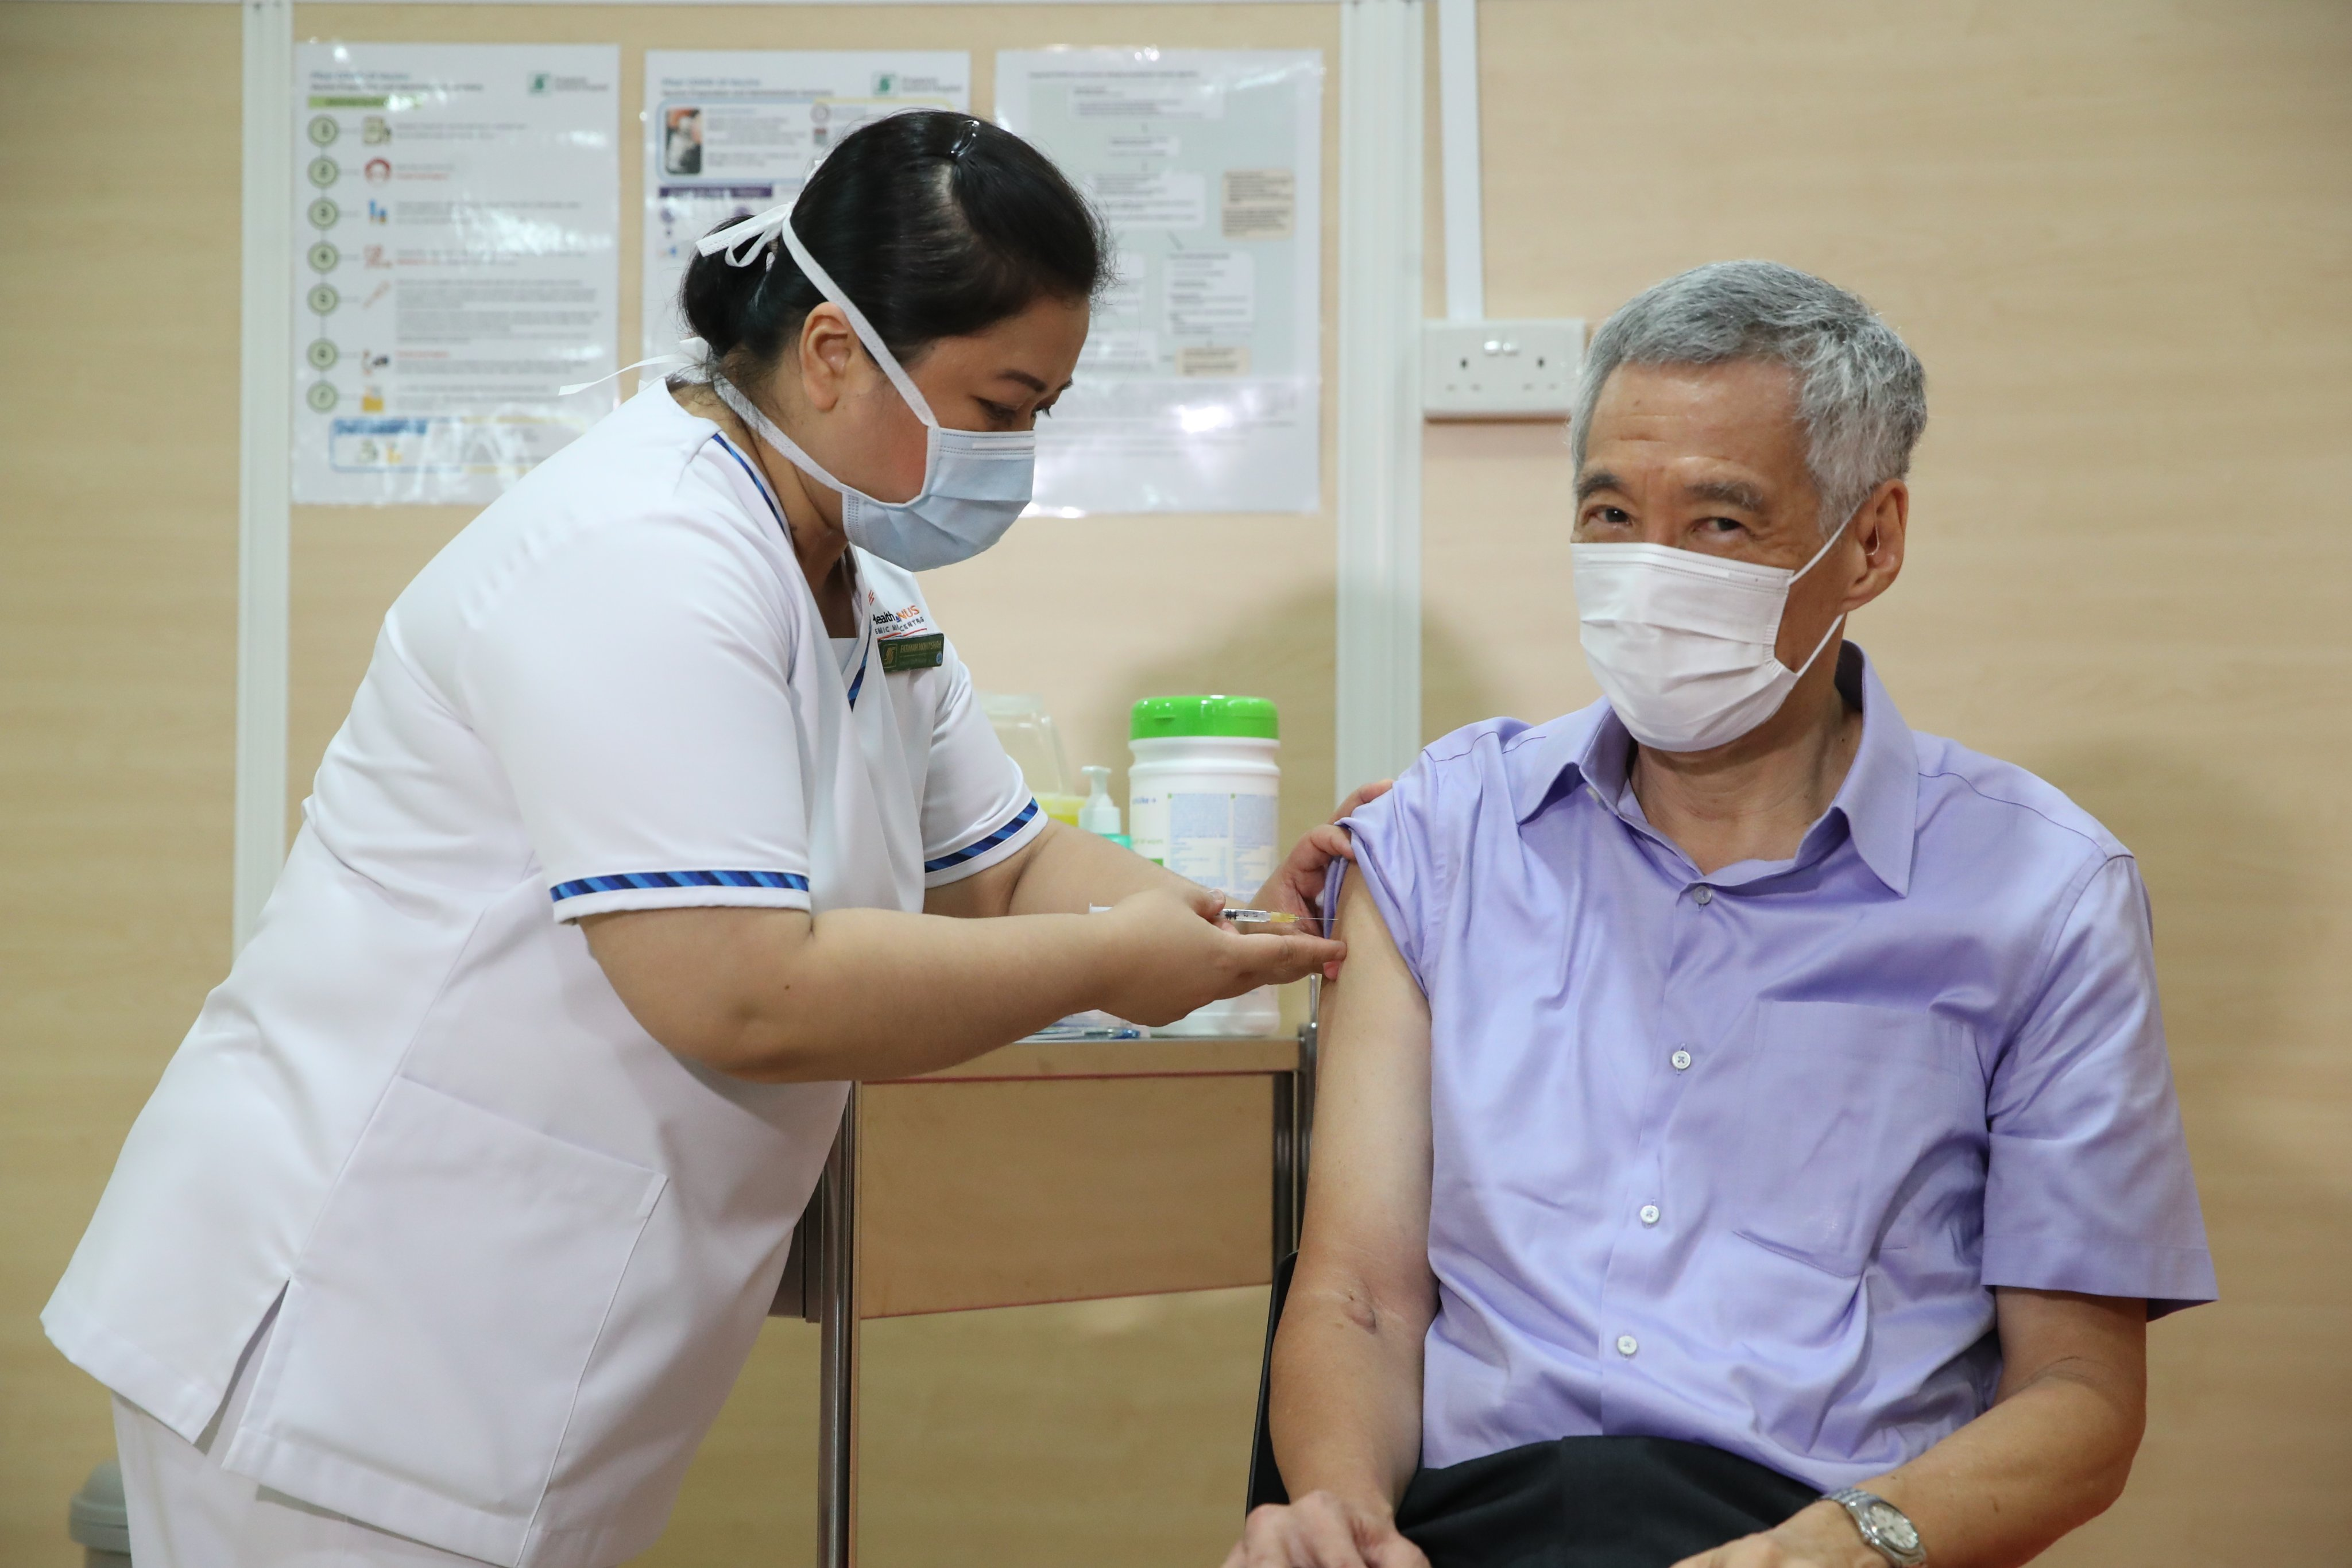 Singapore has permitted two COVID-19 vaccines to be used, made by Pfizer-BioNTech and Moderna. Both vaccines require two doses.